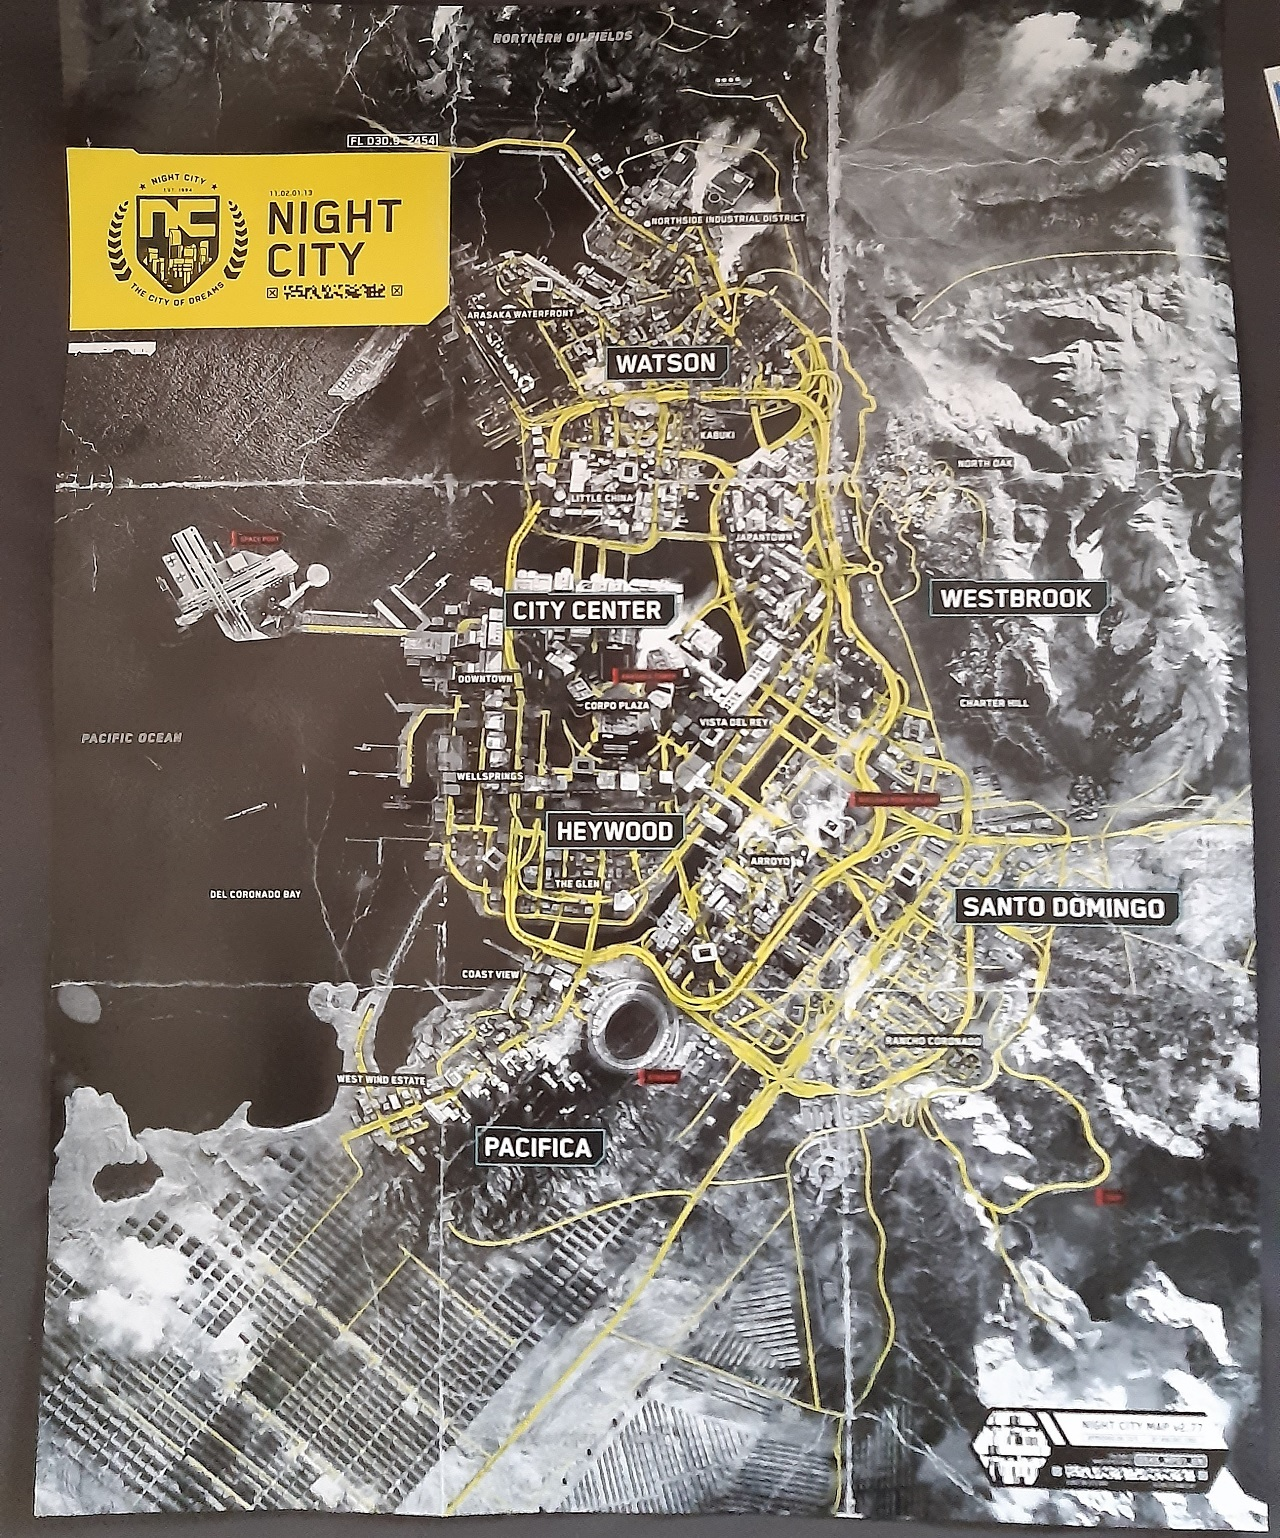 If the map of Night City below is to be believed, it looks like we have a pretty accurate layout of what Cyberpunk 2077's playable area will look like on a grand scale.